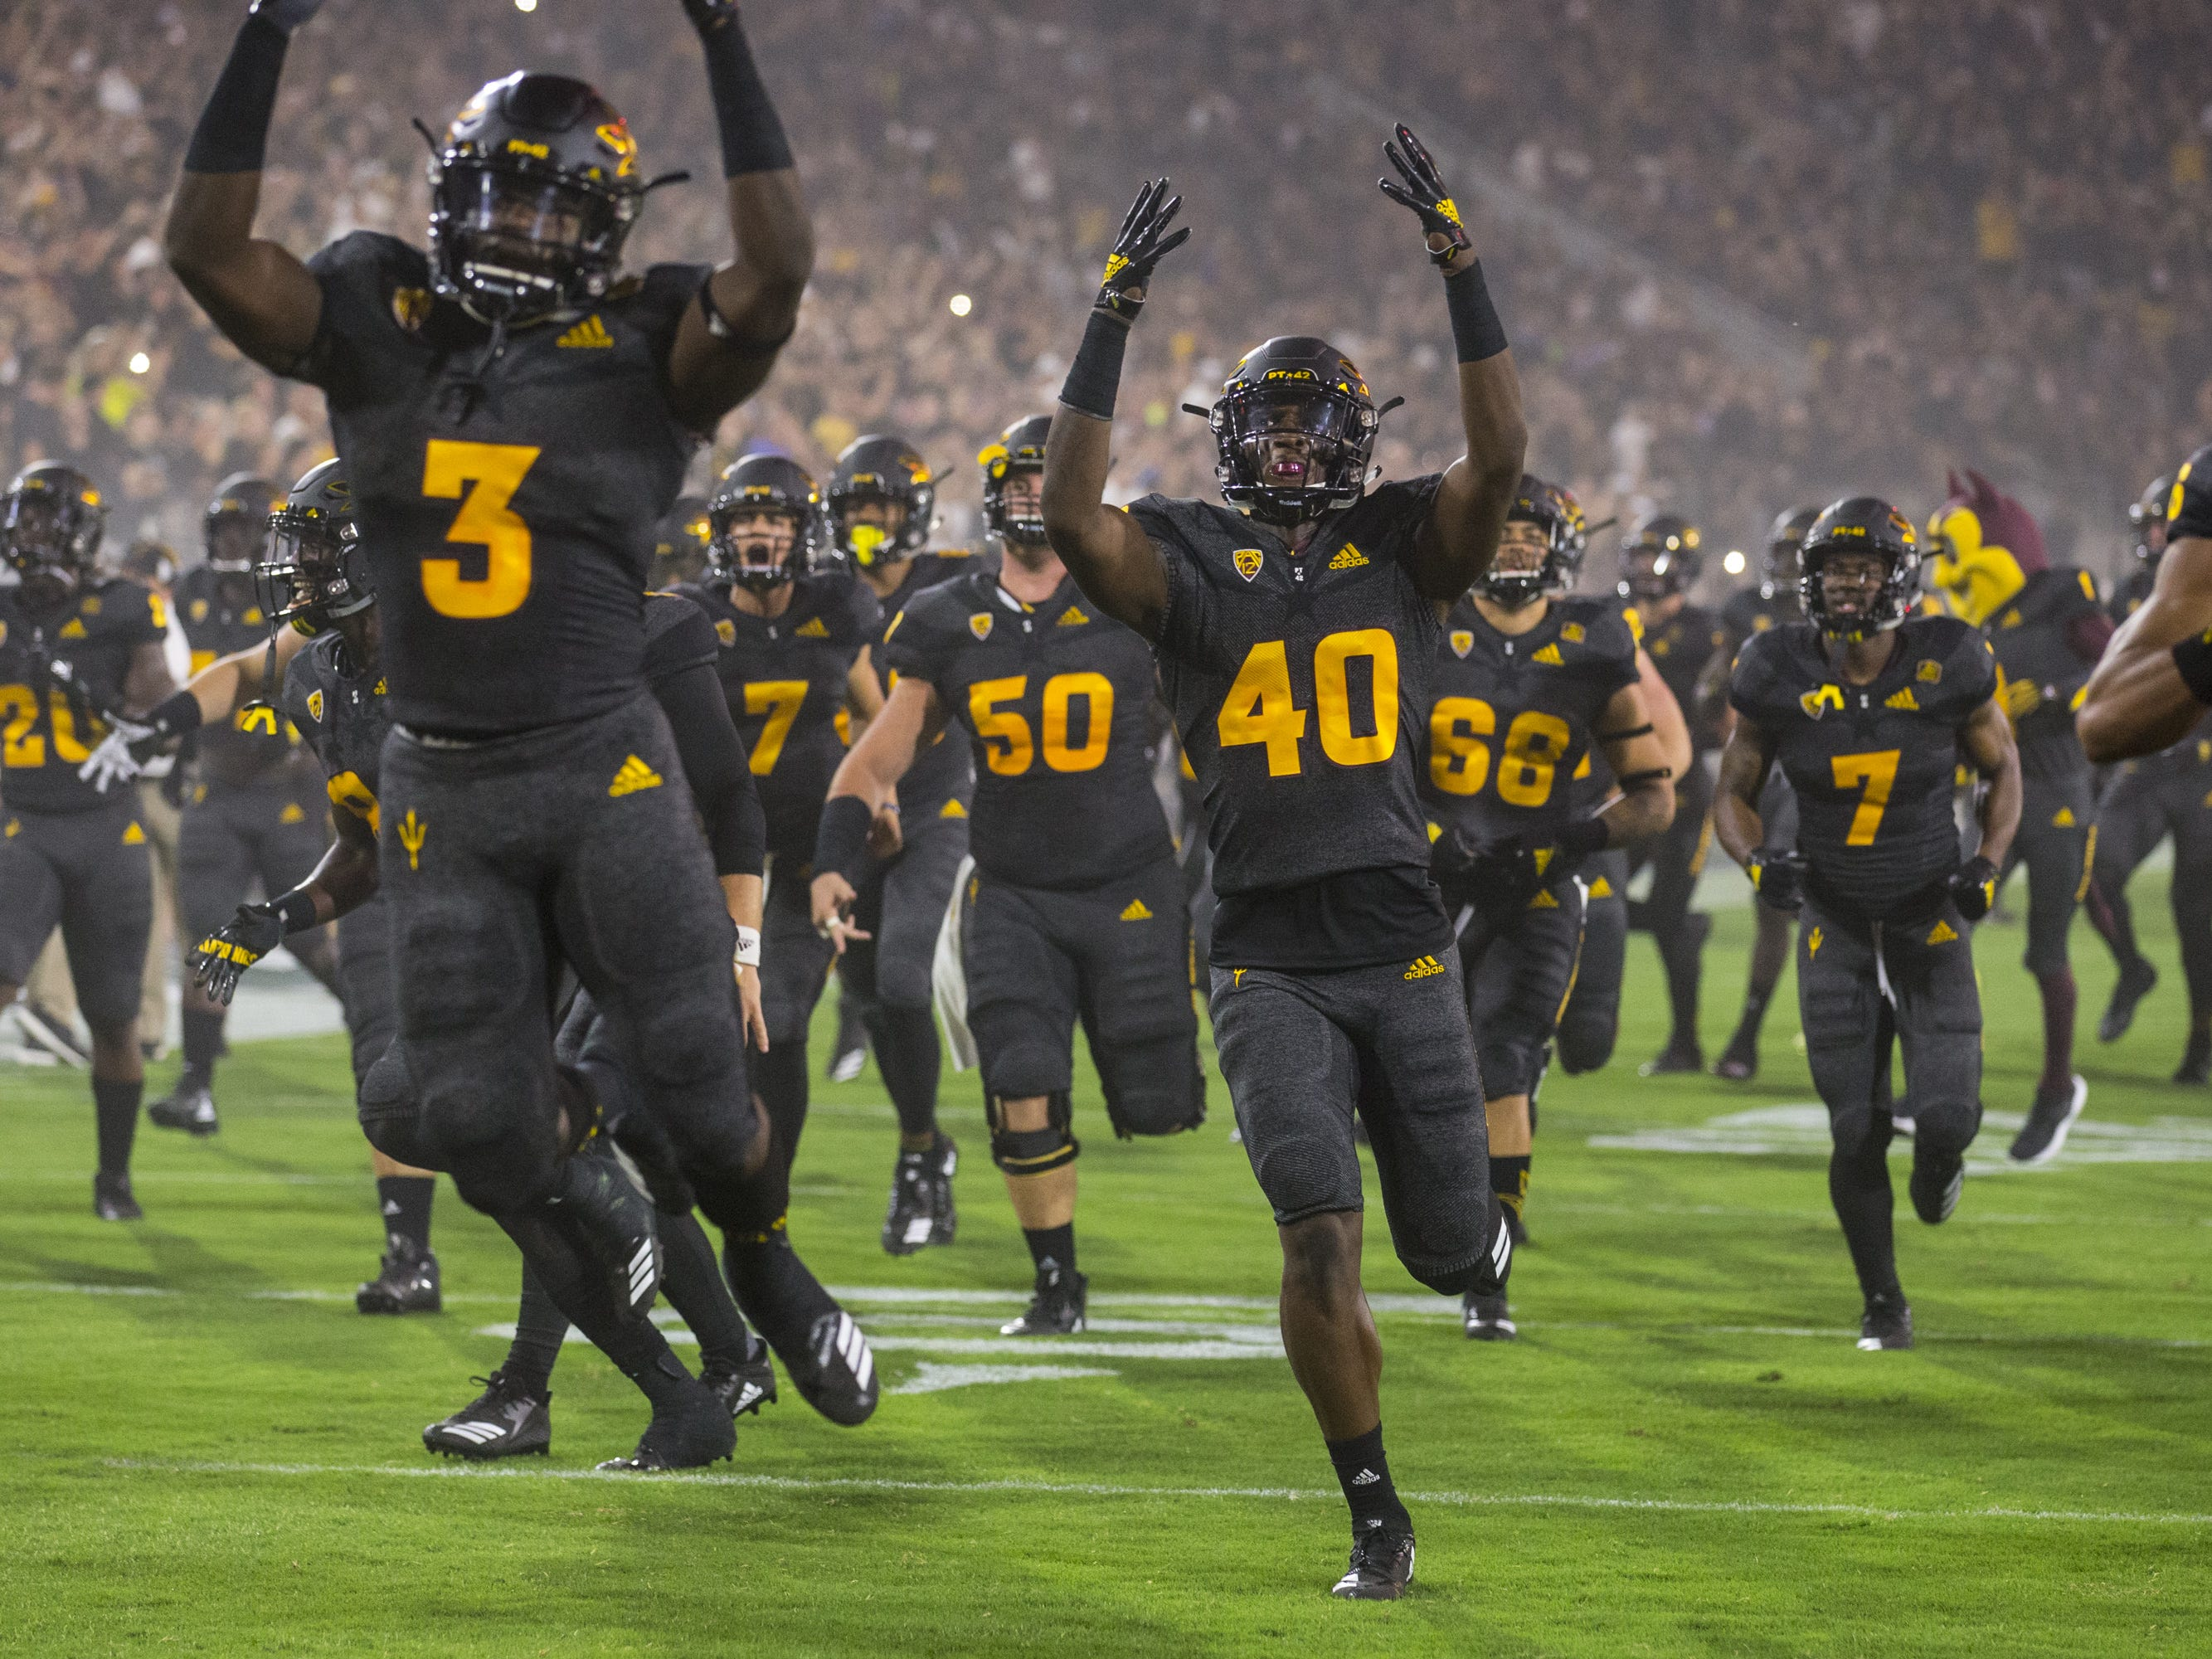 Arizona State takes the field before the game against Michigan State on Saturday, Sept. 8, 2018, at Sun Devil Stadium in Tempe, Ariz.